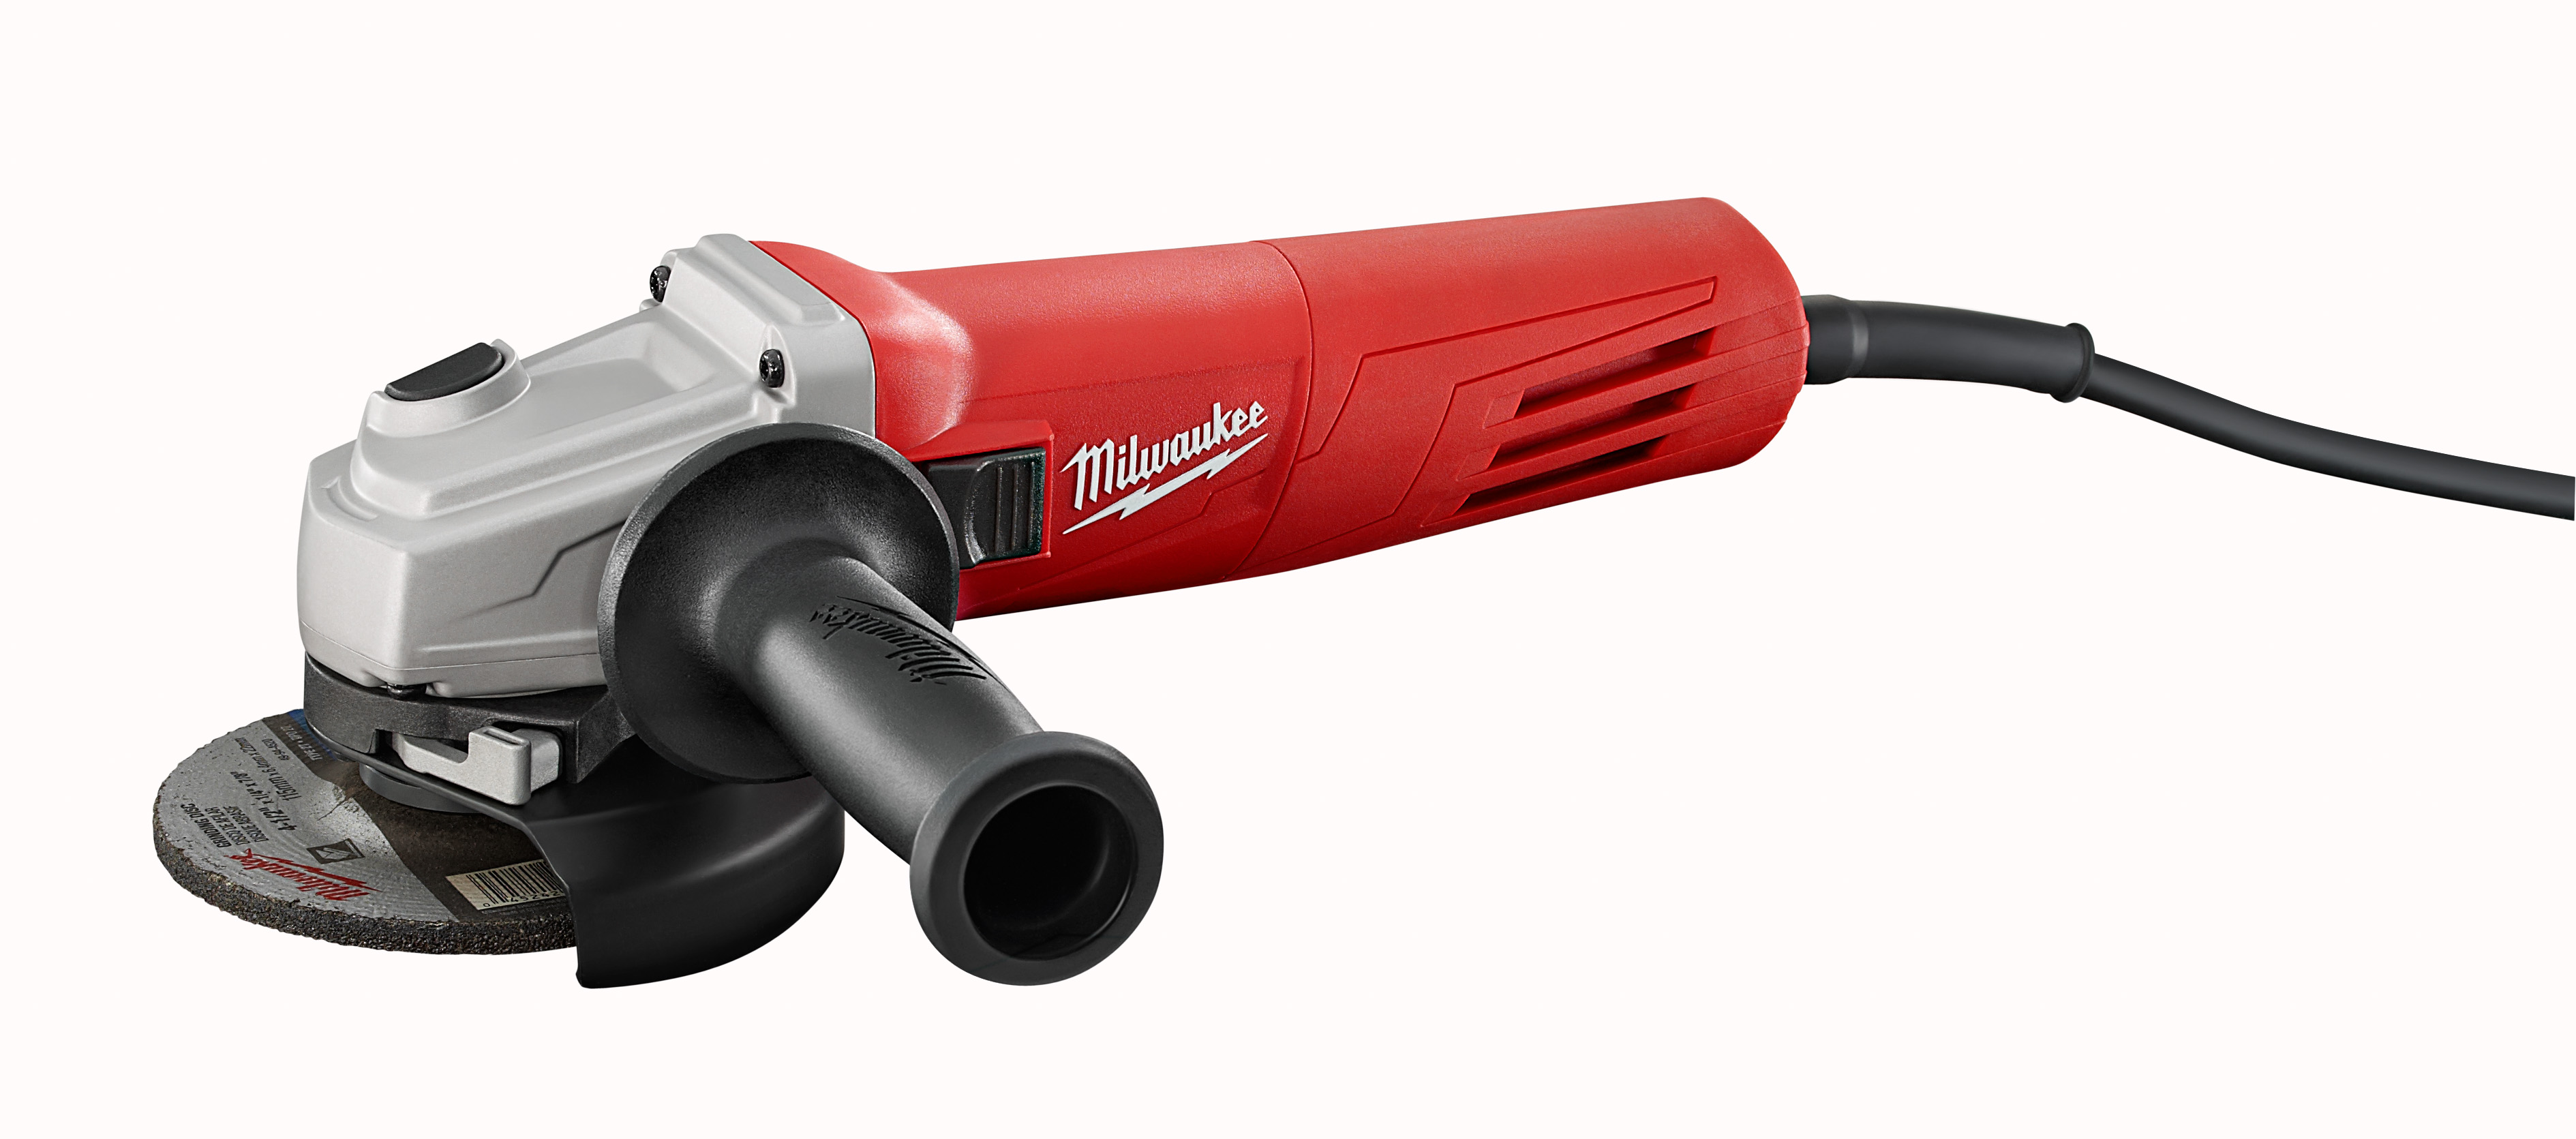 Milwaukee® 6146-33 Small Angle Grinder, 4-1/2 in Dia Wheel, 5/8-11 UNC Arbor/Shank, 120 VAC, Red